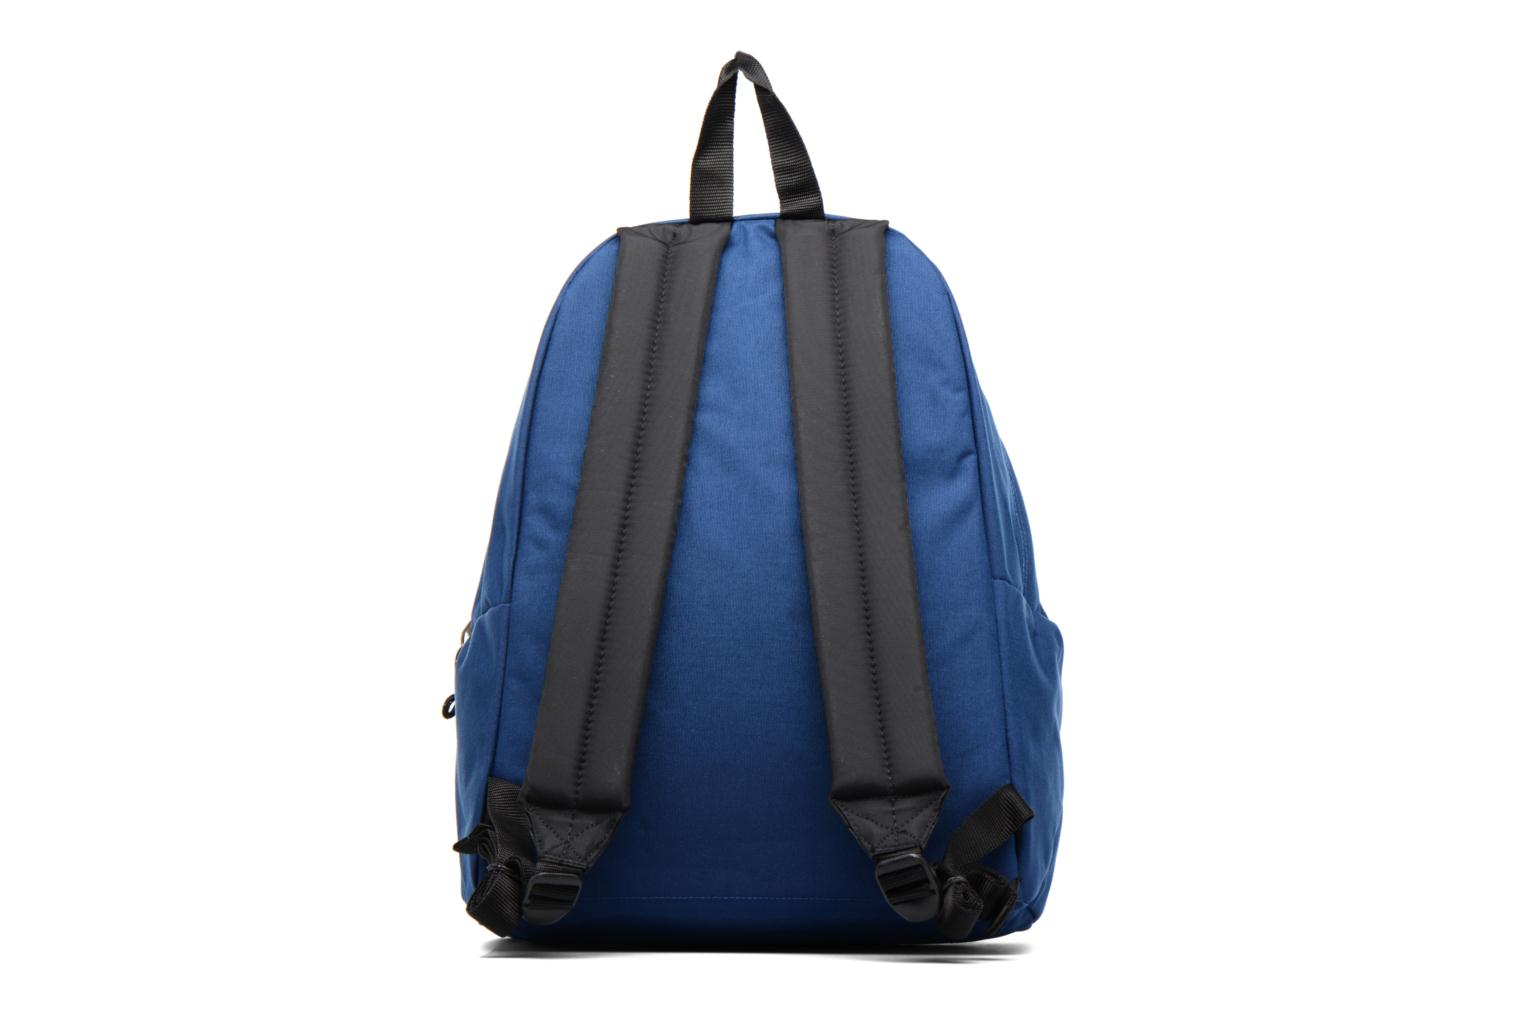 PADDED PACK'R Sac à dos toile Movienight blue